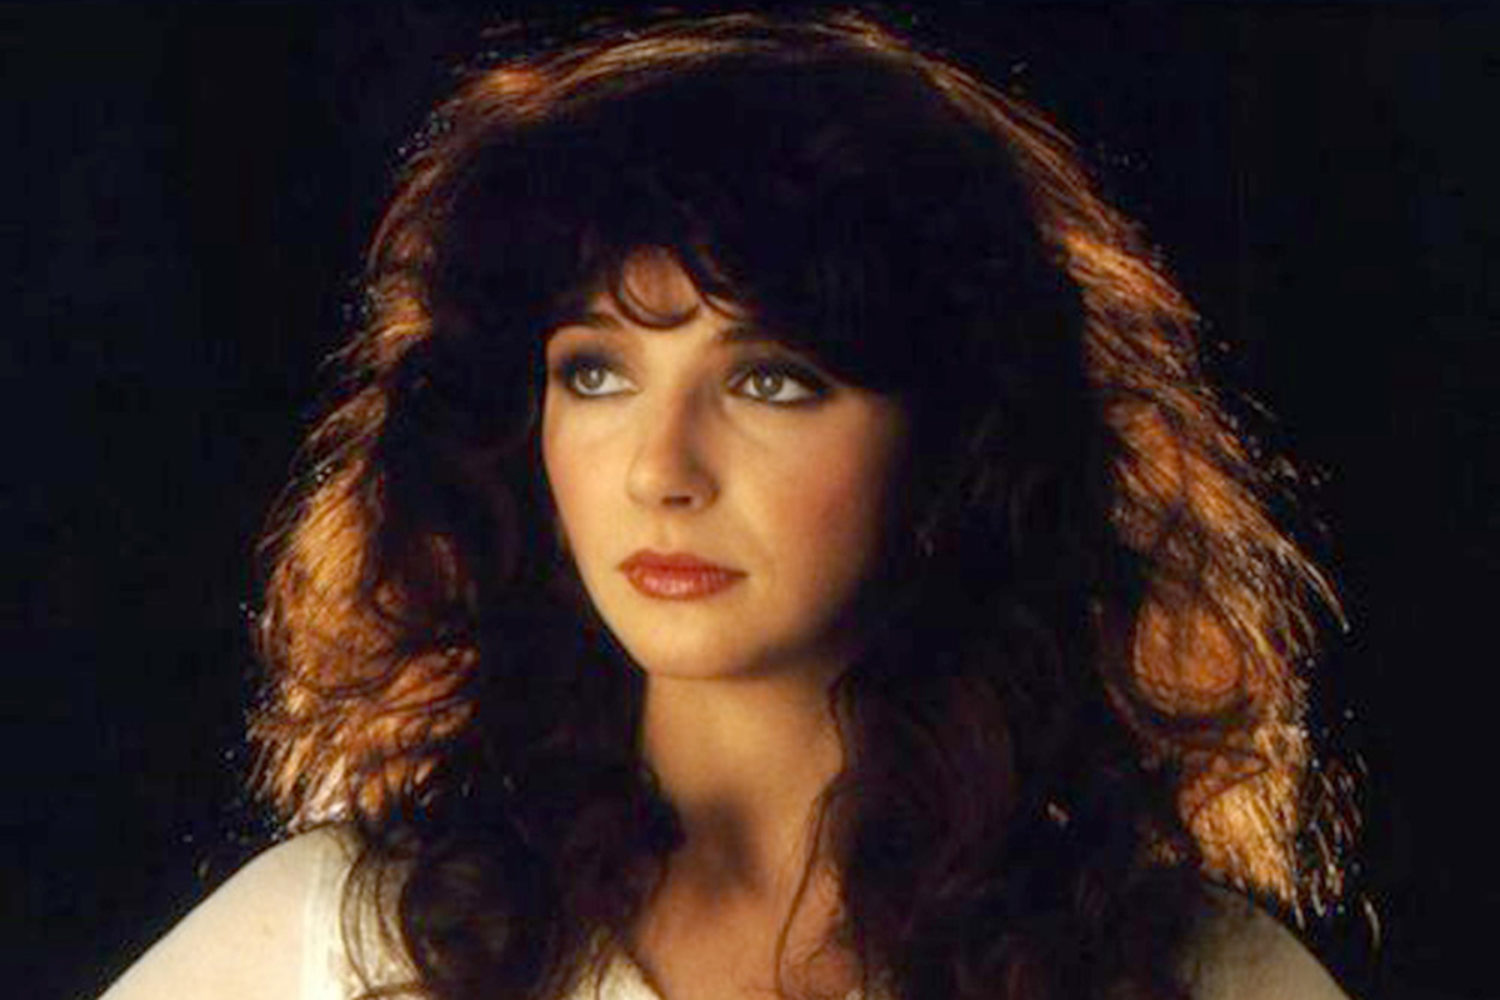 Kate Bush is releasing a live album of her Before The Dawn gigs